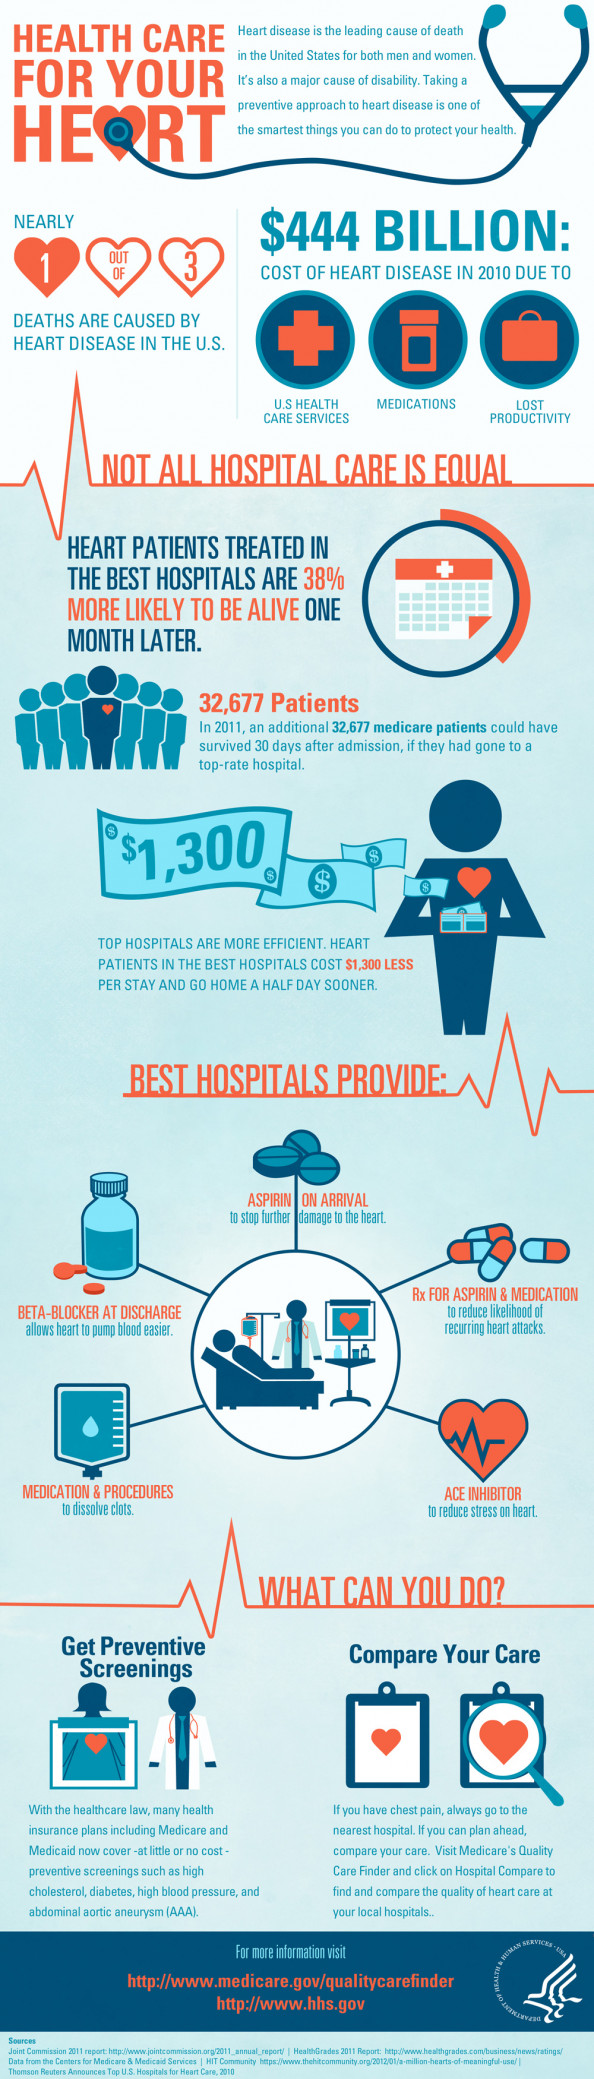 Health Care For Your HEART Infographic